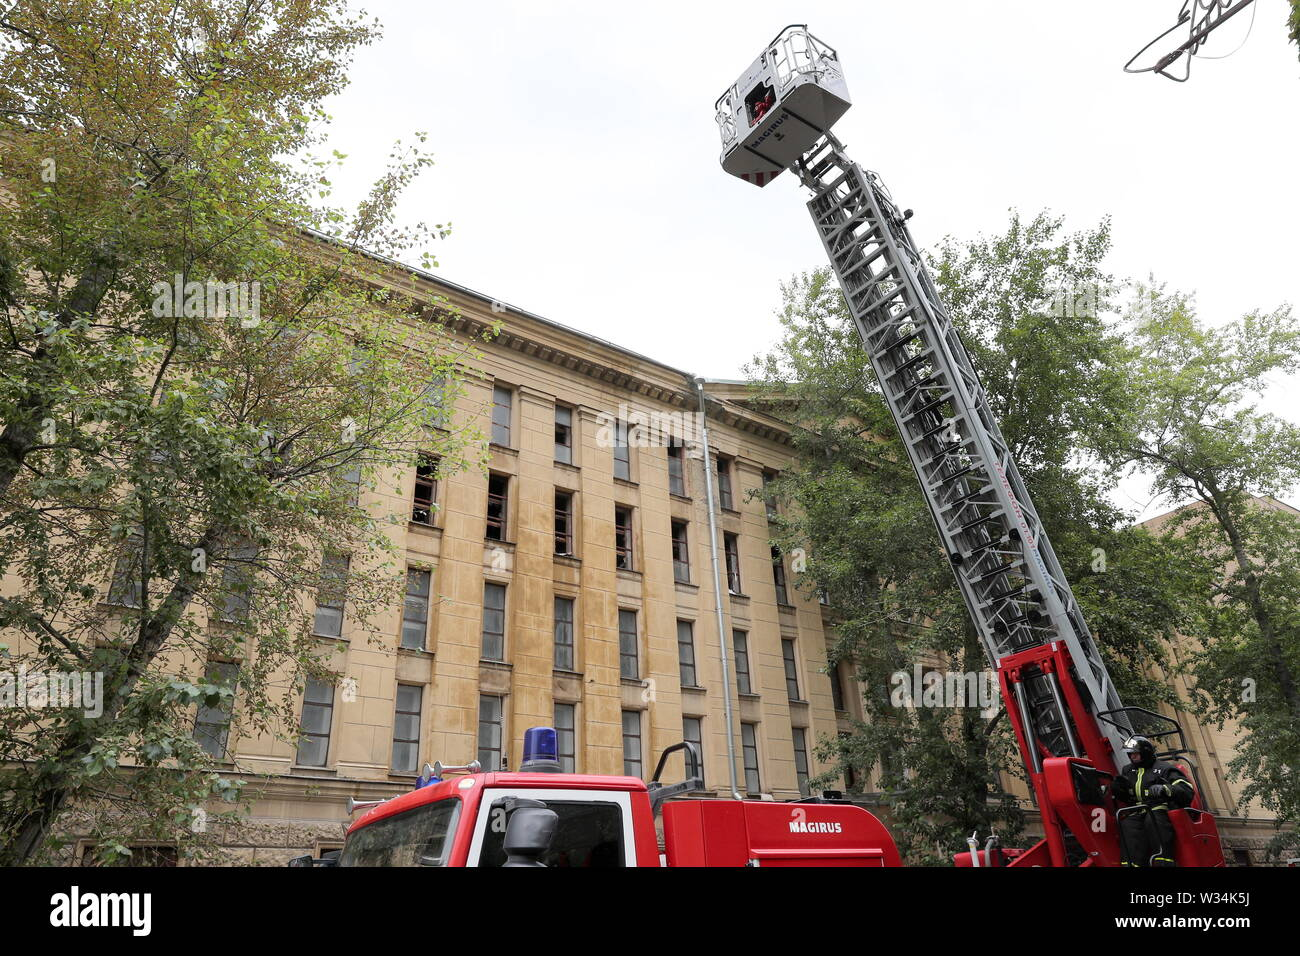 Moscow, Russia. 12th July, 2019. MOSCOW, RUSSIA - JULY 12, 2019: A view of the building of the Russian State Archive of Literature and Art hit by fire. The 150 sq.m. fire on the 4th floor of the building has been extinguished. Gavriil Grigorov/TASS Credit: ITAR-TASS News Agency/Alamy Live News - Stock Image